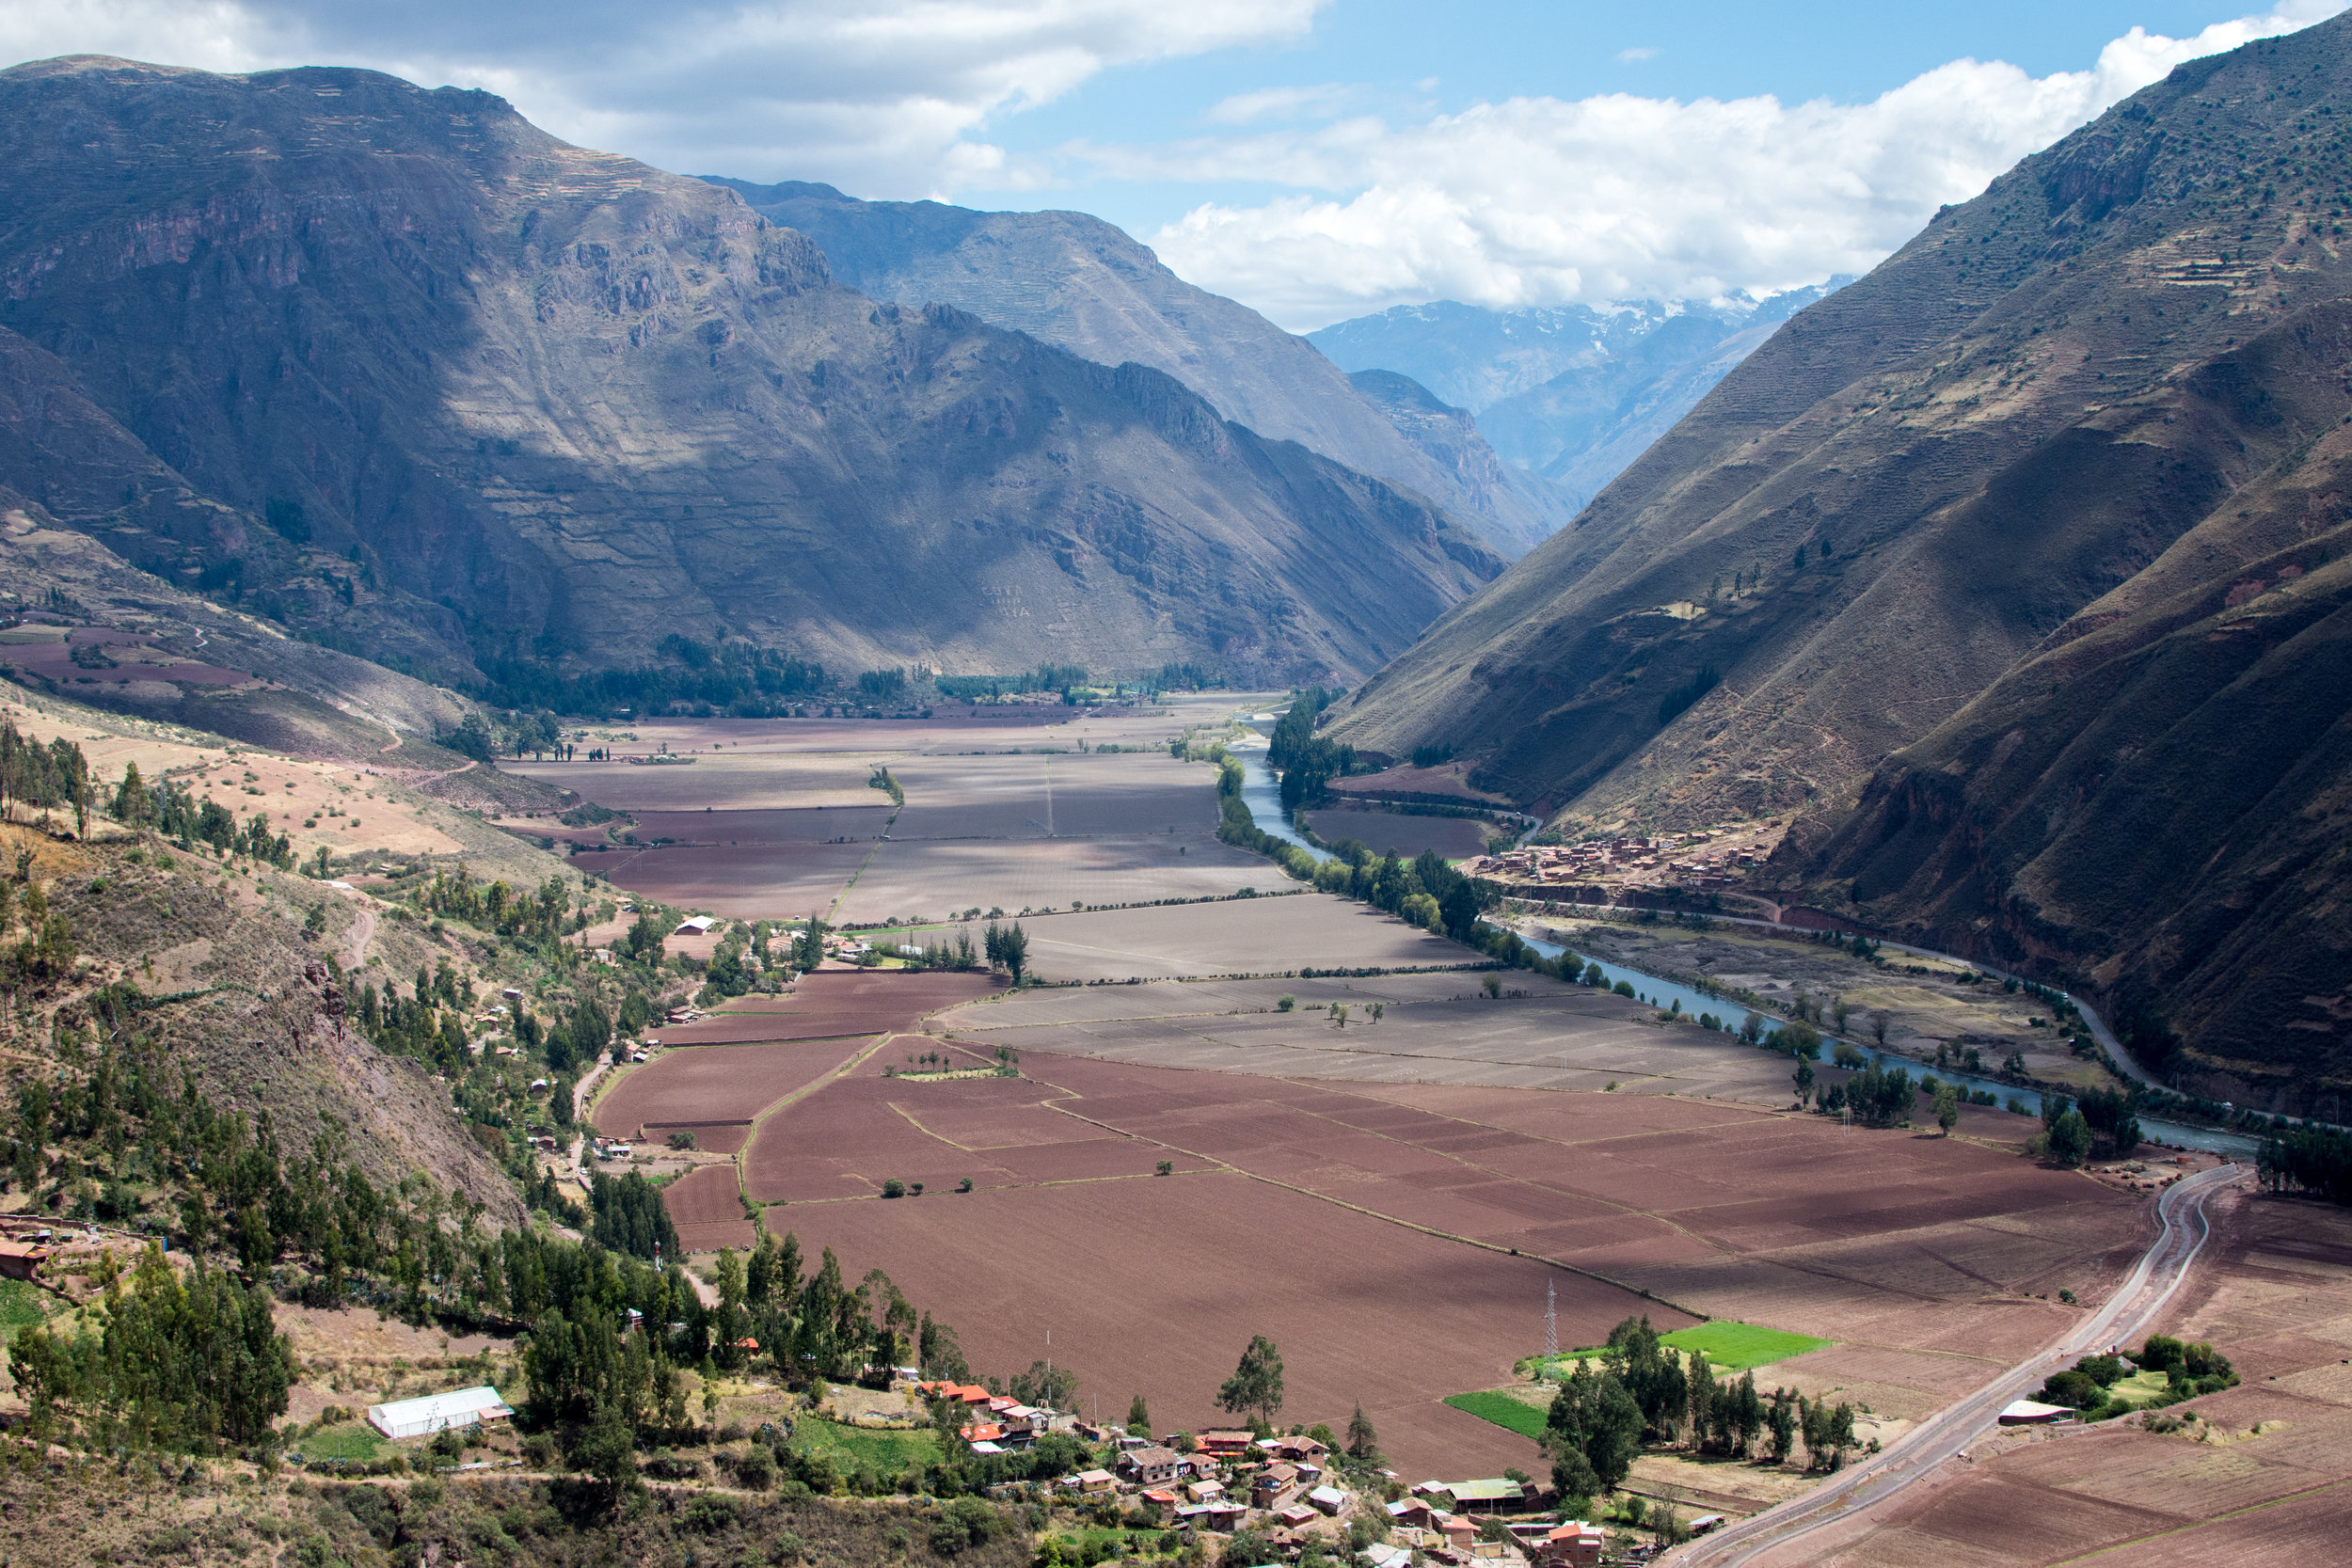 View overlooking the Sacred Valley